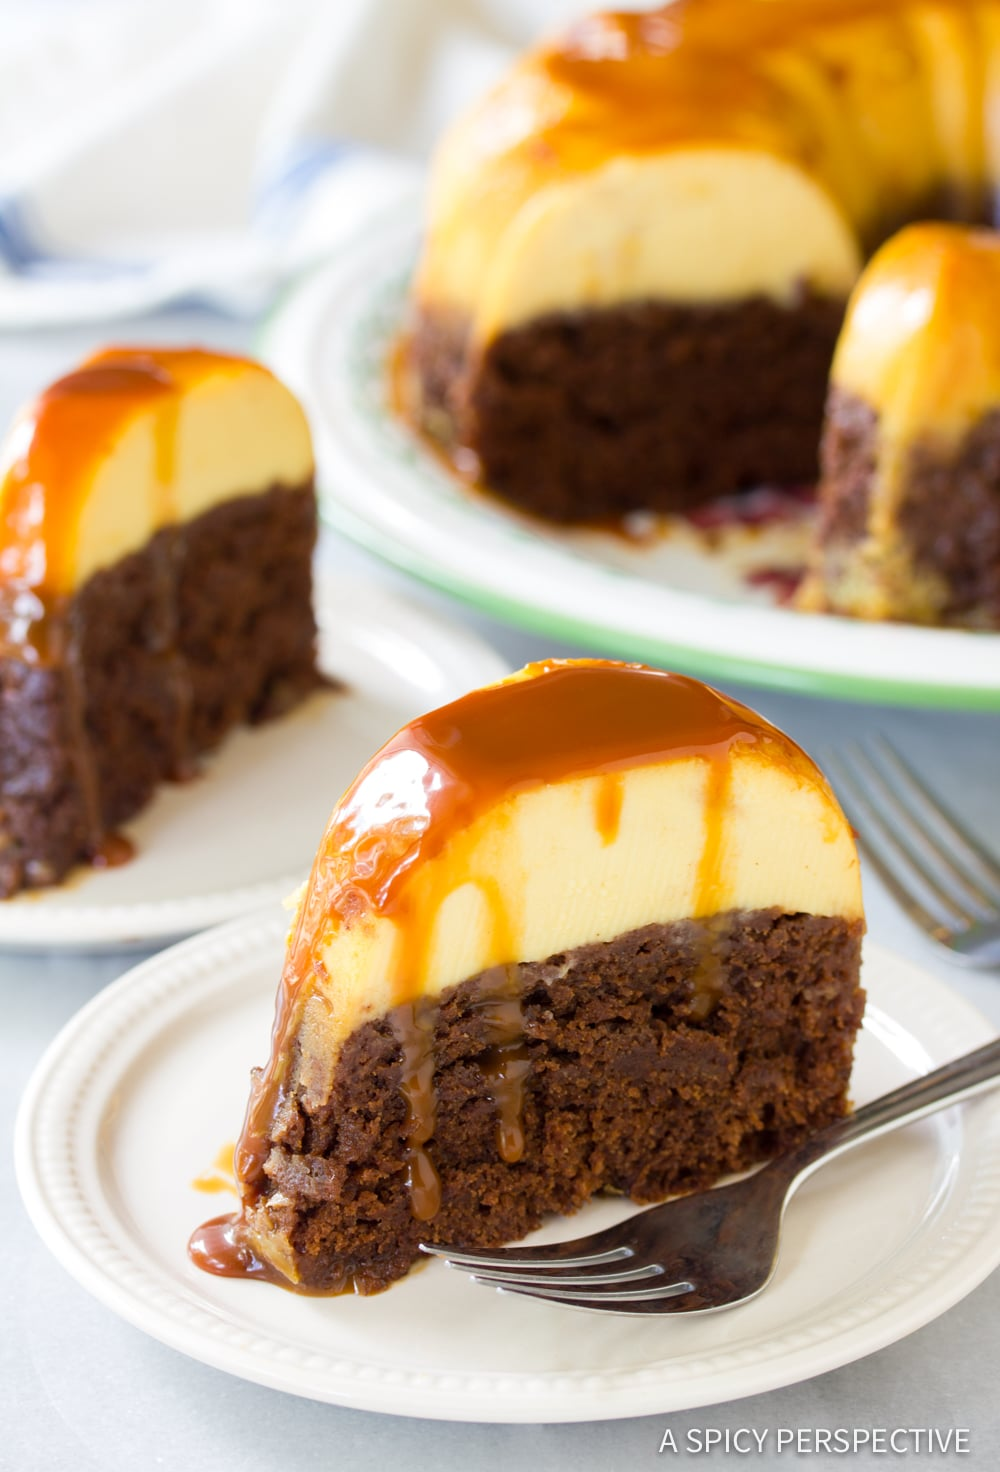 The Best Chocoflan Impossible Cake Recipe #ASpicyPerspective